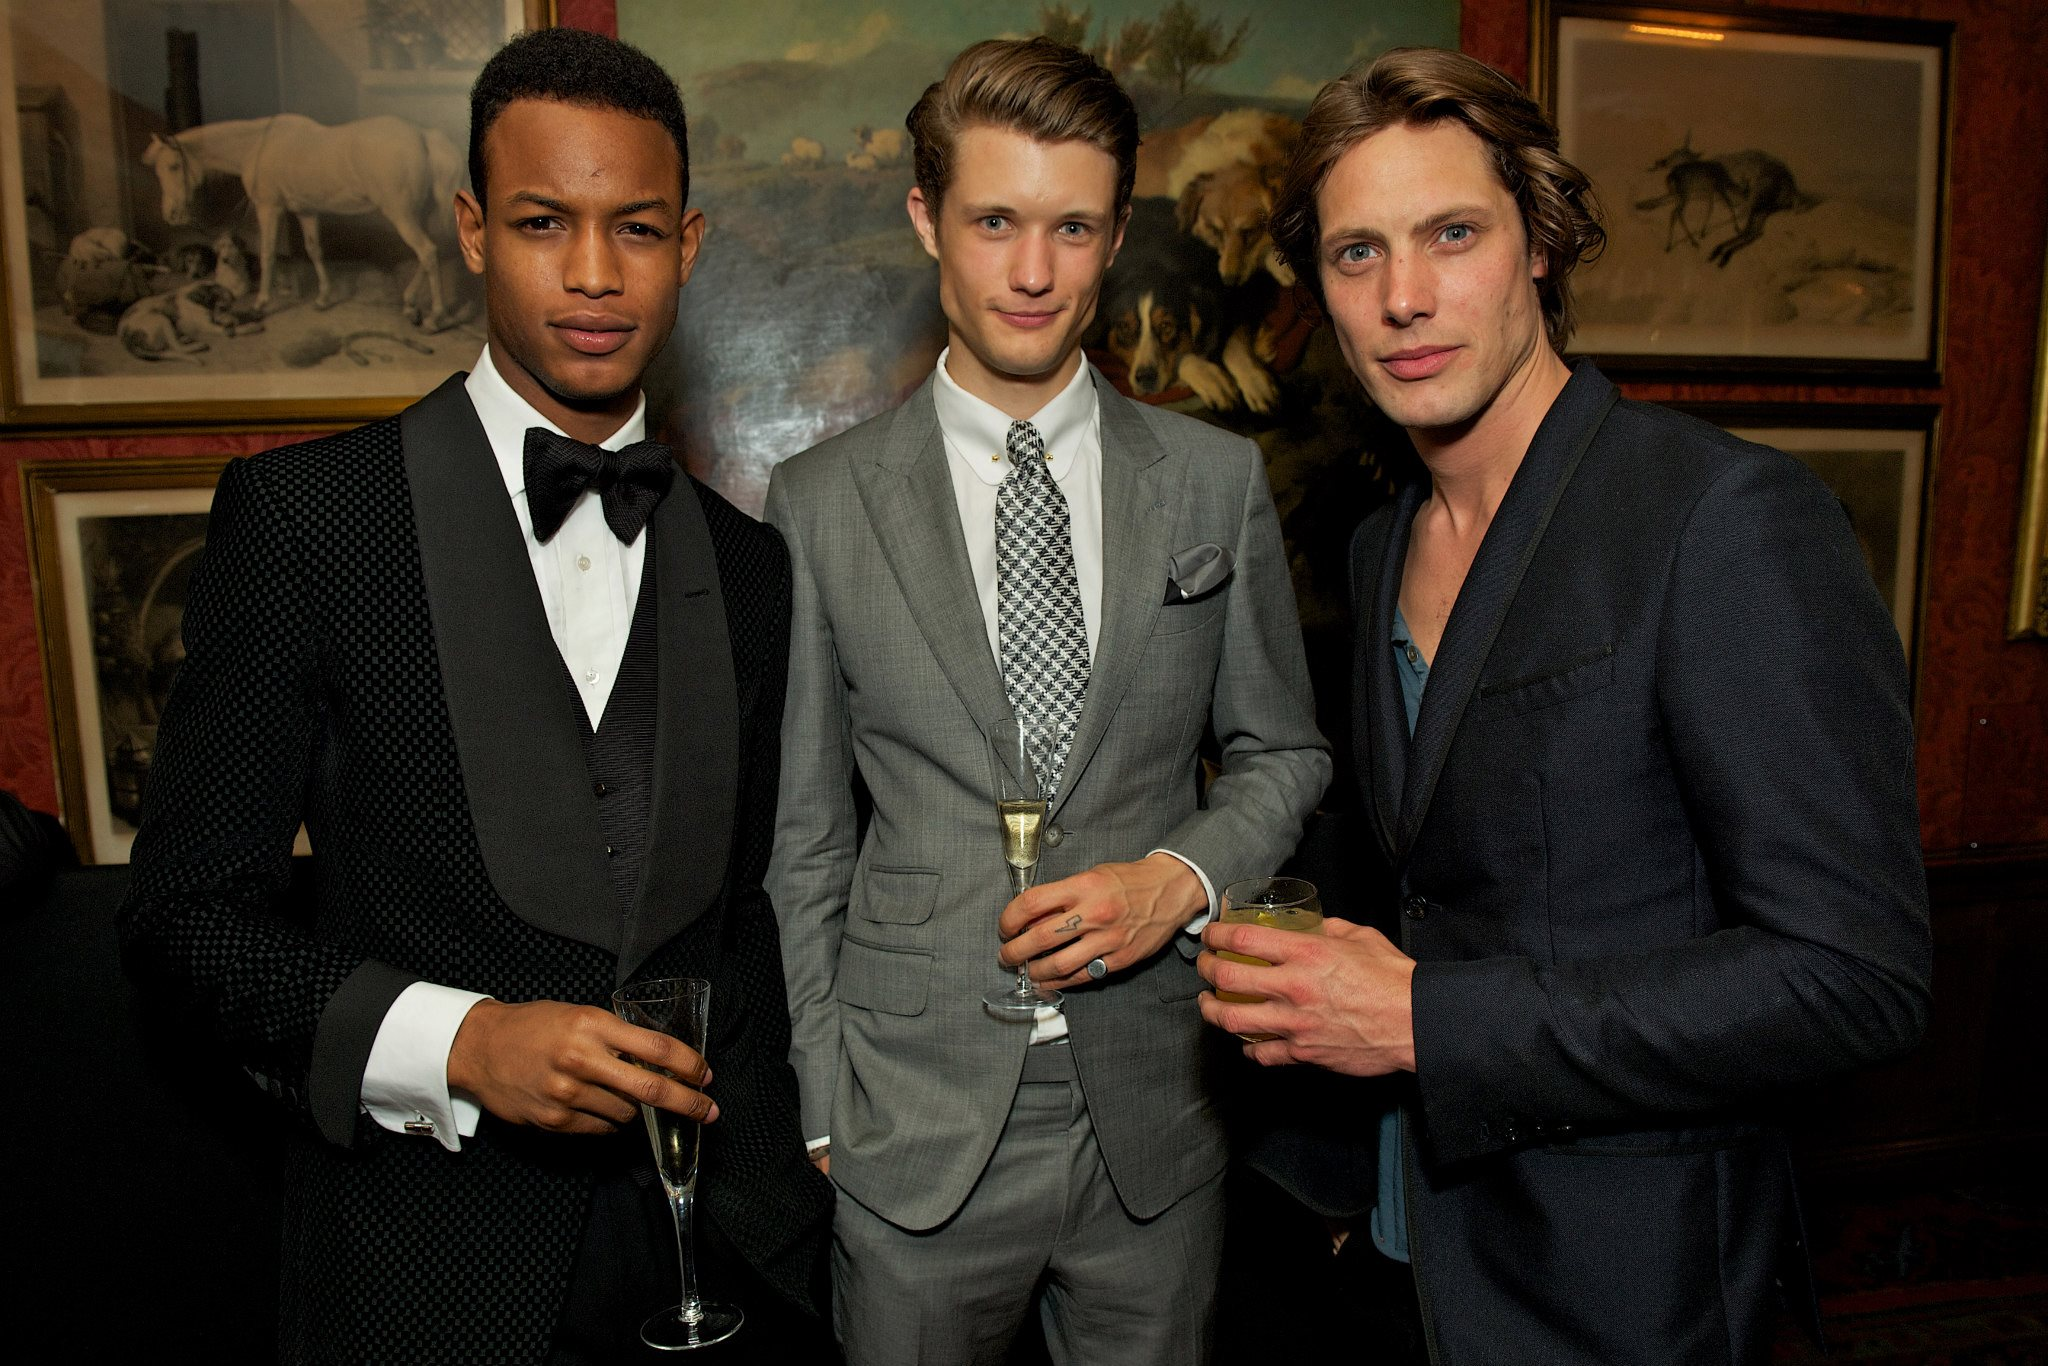 Conrad Bromfield, Fionn Macdiarmid and James Rousseau at the TOM FORD